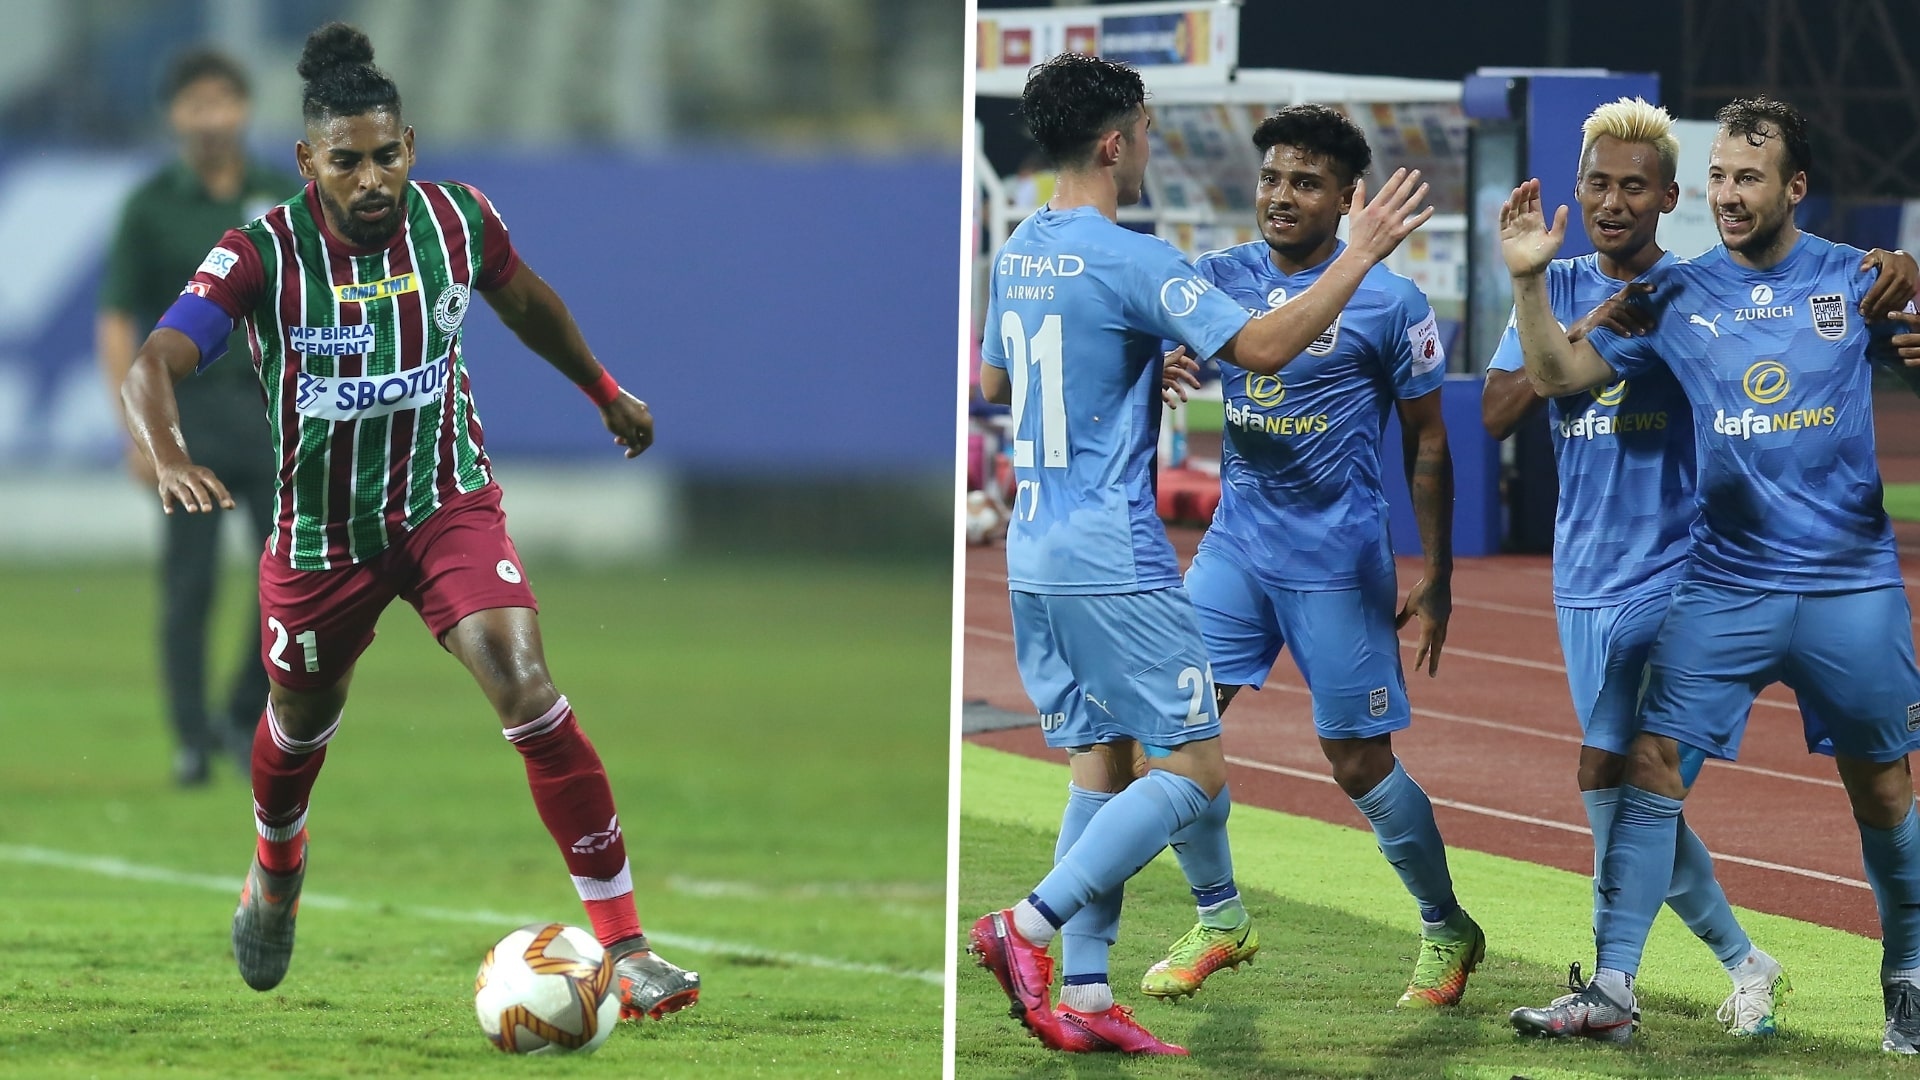 ISL Final: ATK Mohun Bagan's individual brilliance up against 'team' Mumbai City